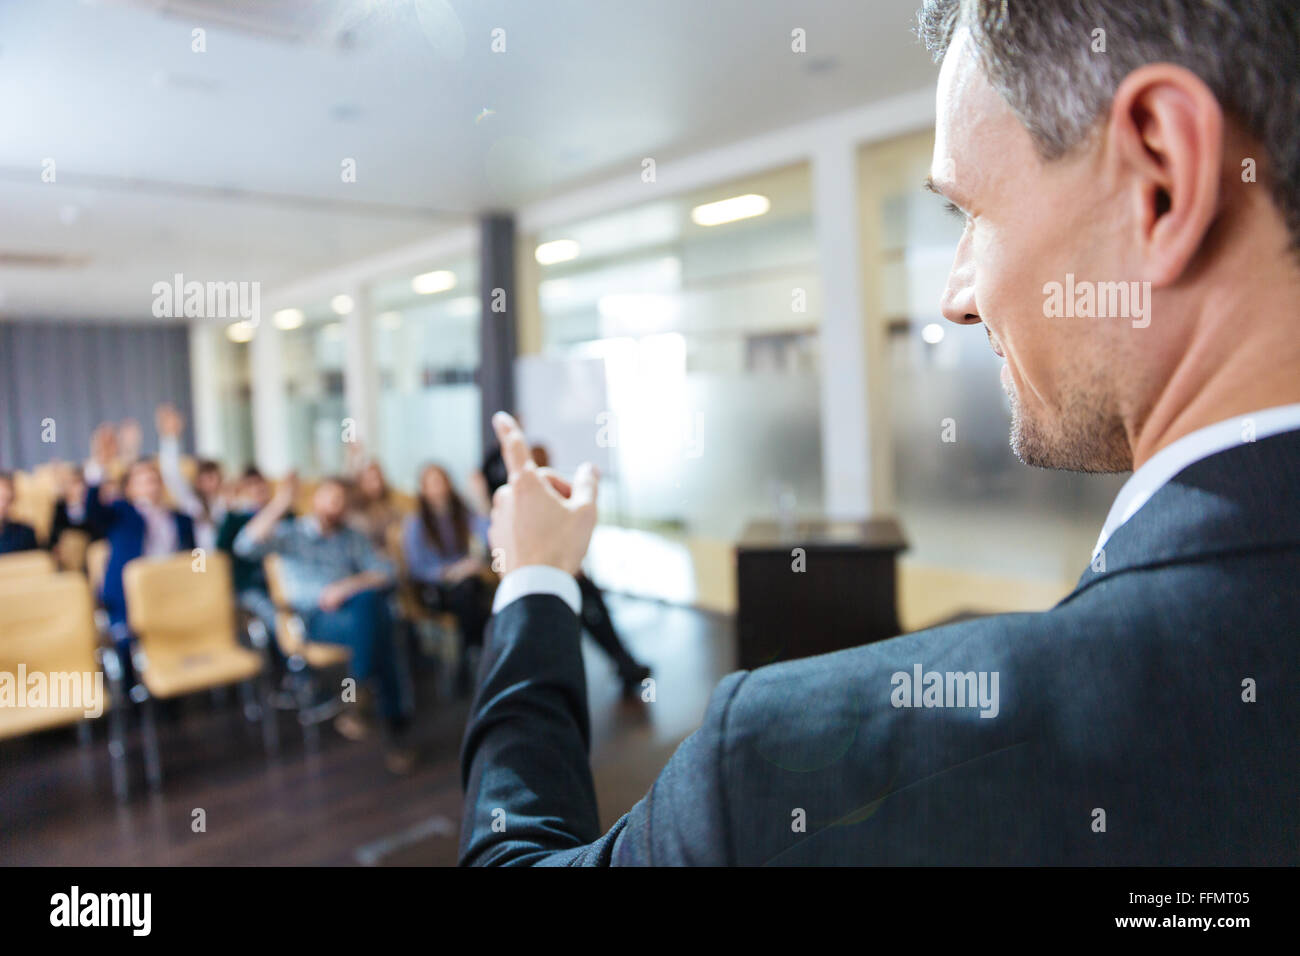 Closeup of speaker pointing to audience on business conference in meeting hall - Stock Image